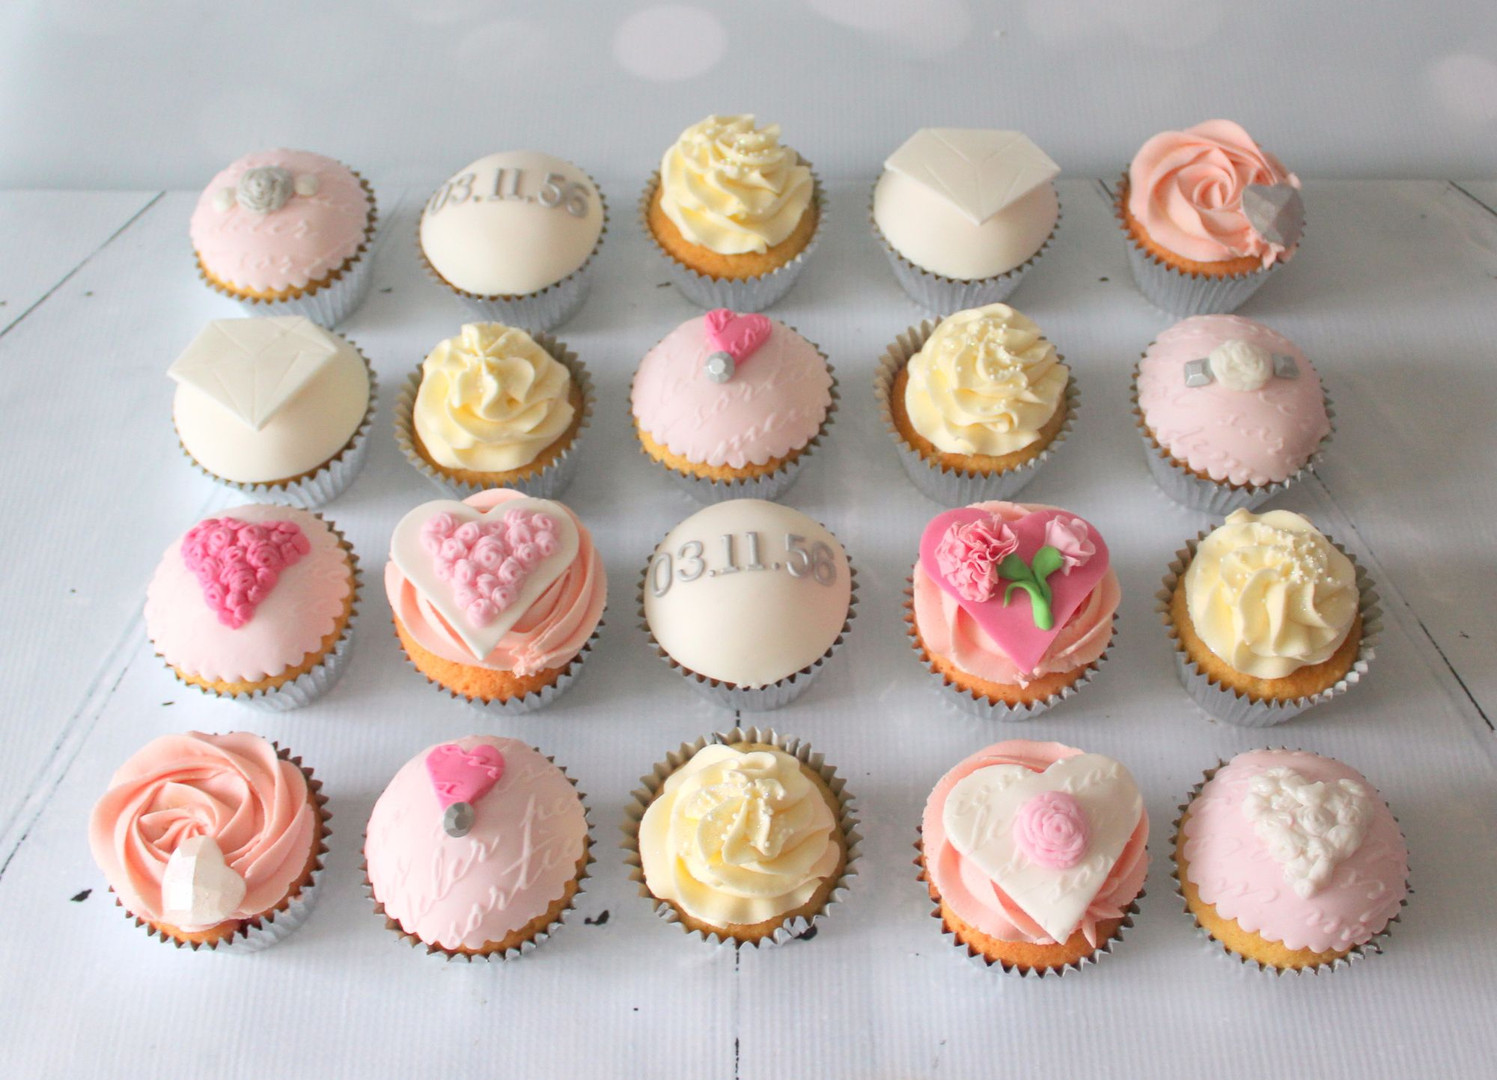 Save the date cupcakes